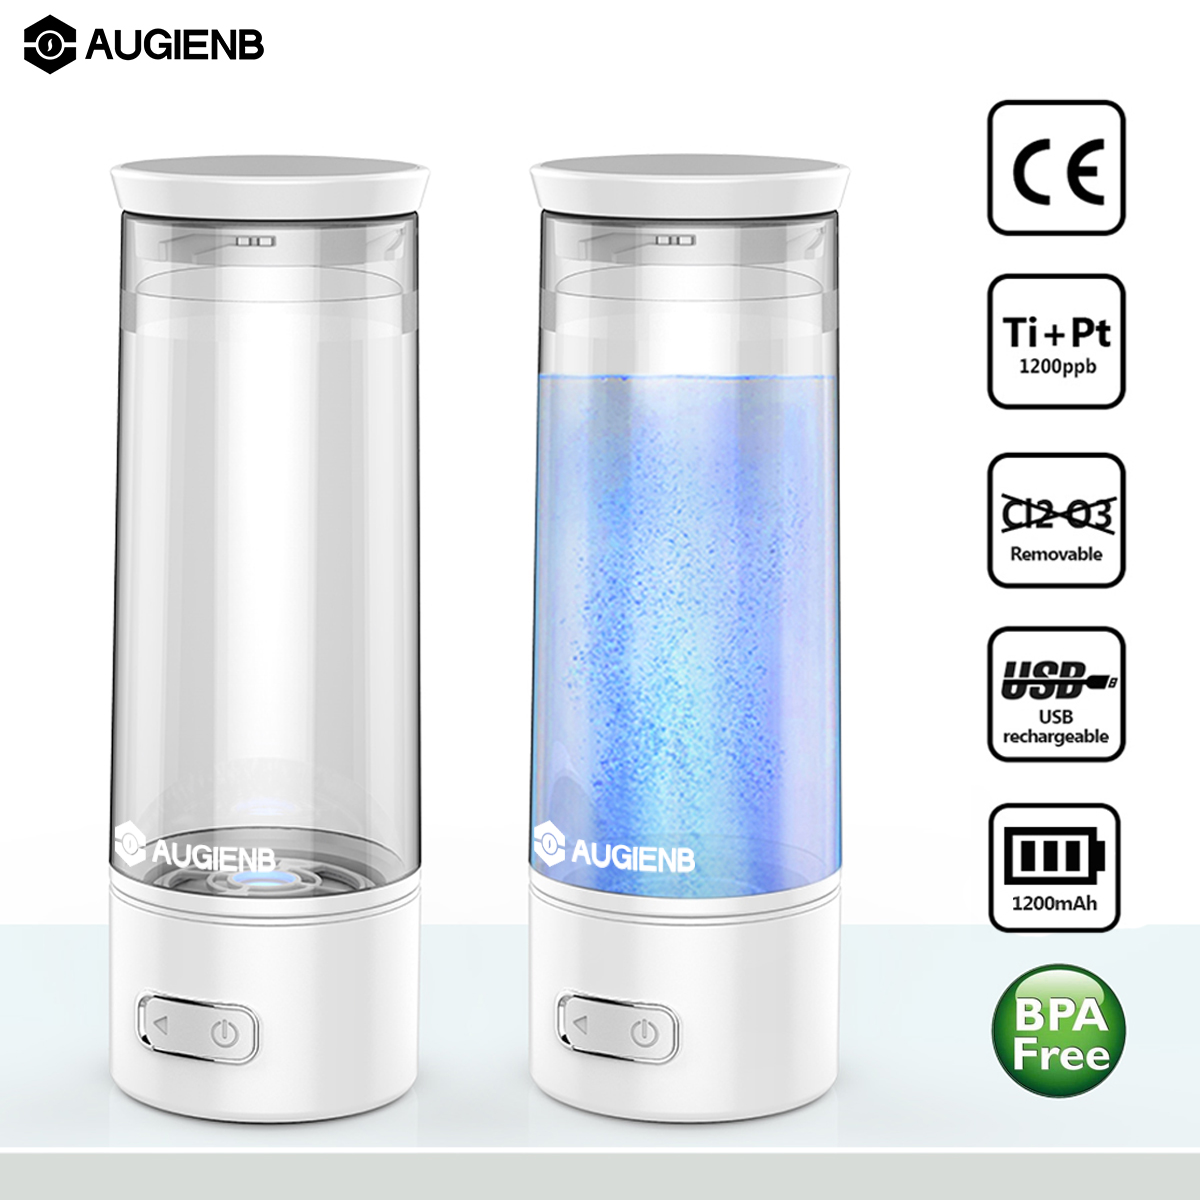 Augienb USB Rechargable High-Rich Hydrogen Water Bottle Ionizer Generator Hydrogen Oxygen Separation Alkaline Energy Cup Filter 380ml usb hydrogen water generator rechargeable portable water ionizer bottle electrolysis energy hydrogen rich antioxidant cup